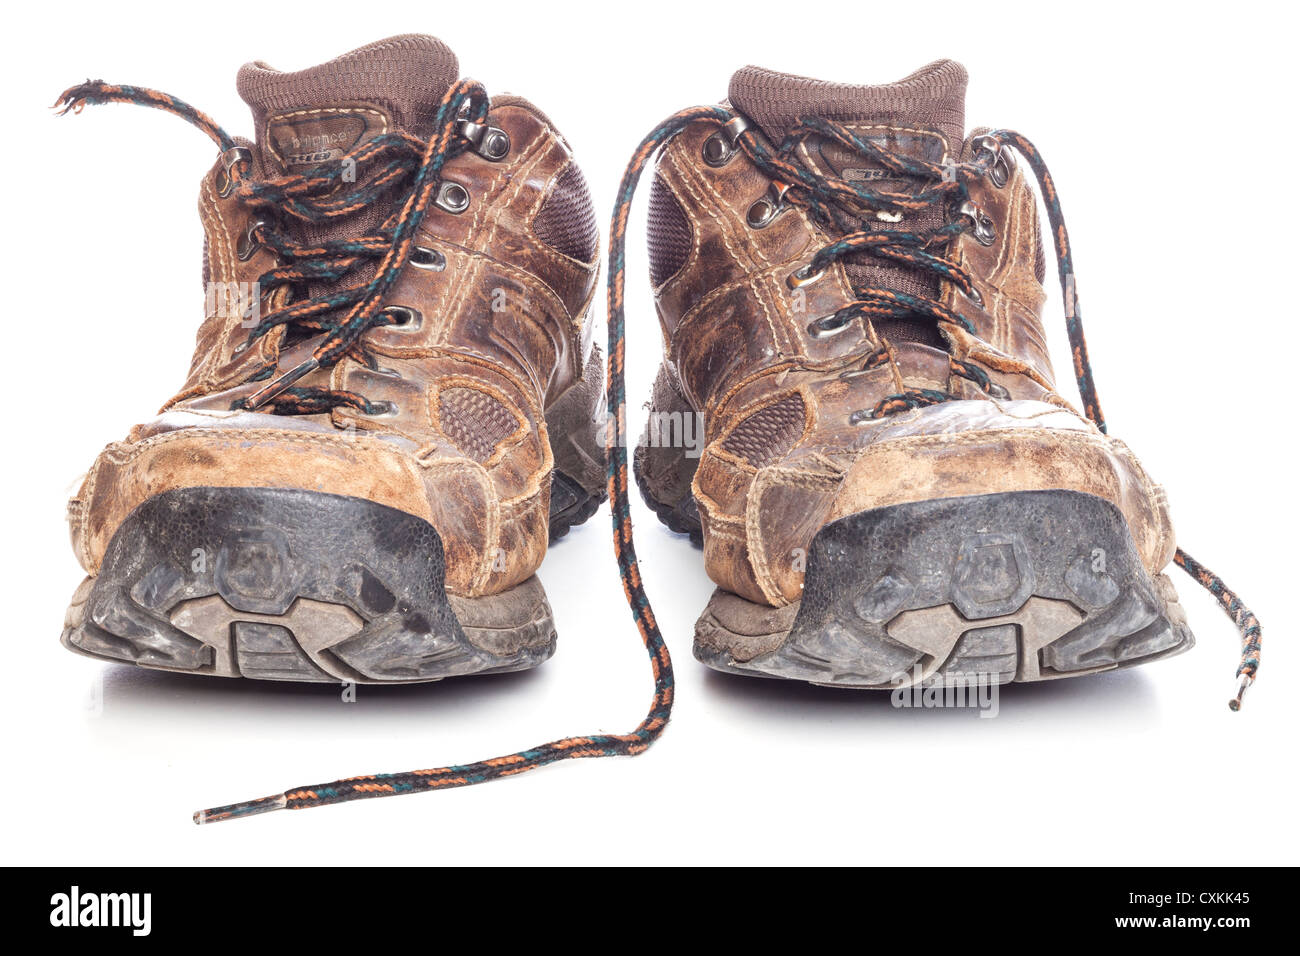 A pair of old shoes, men's size 11, on a white background. Focus stack, in focus front to back. - Stock Image